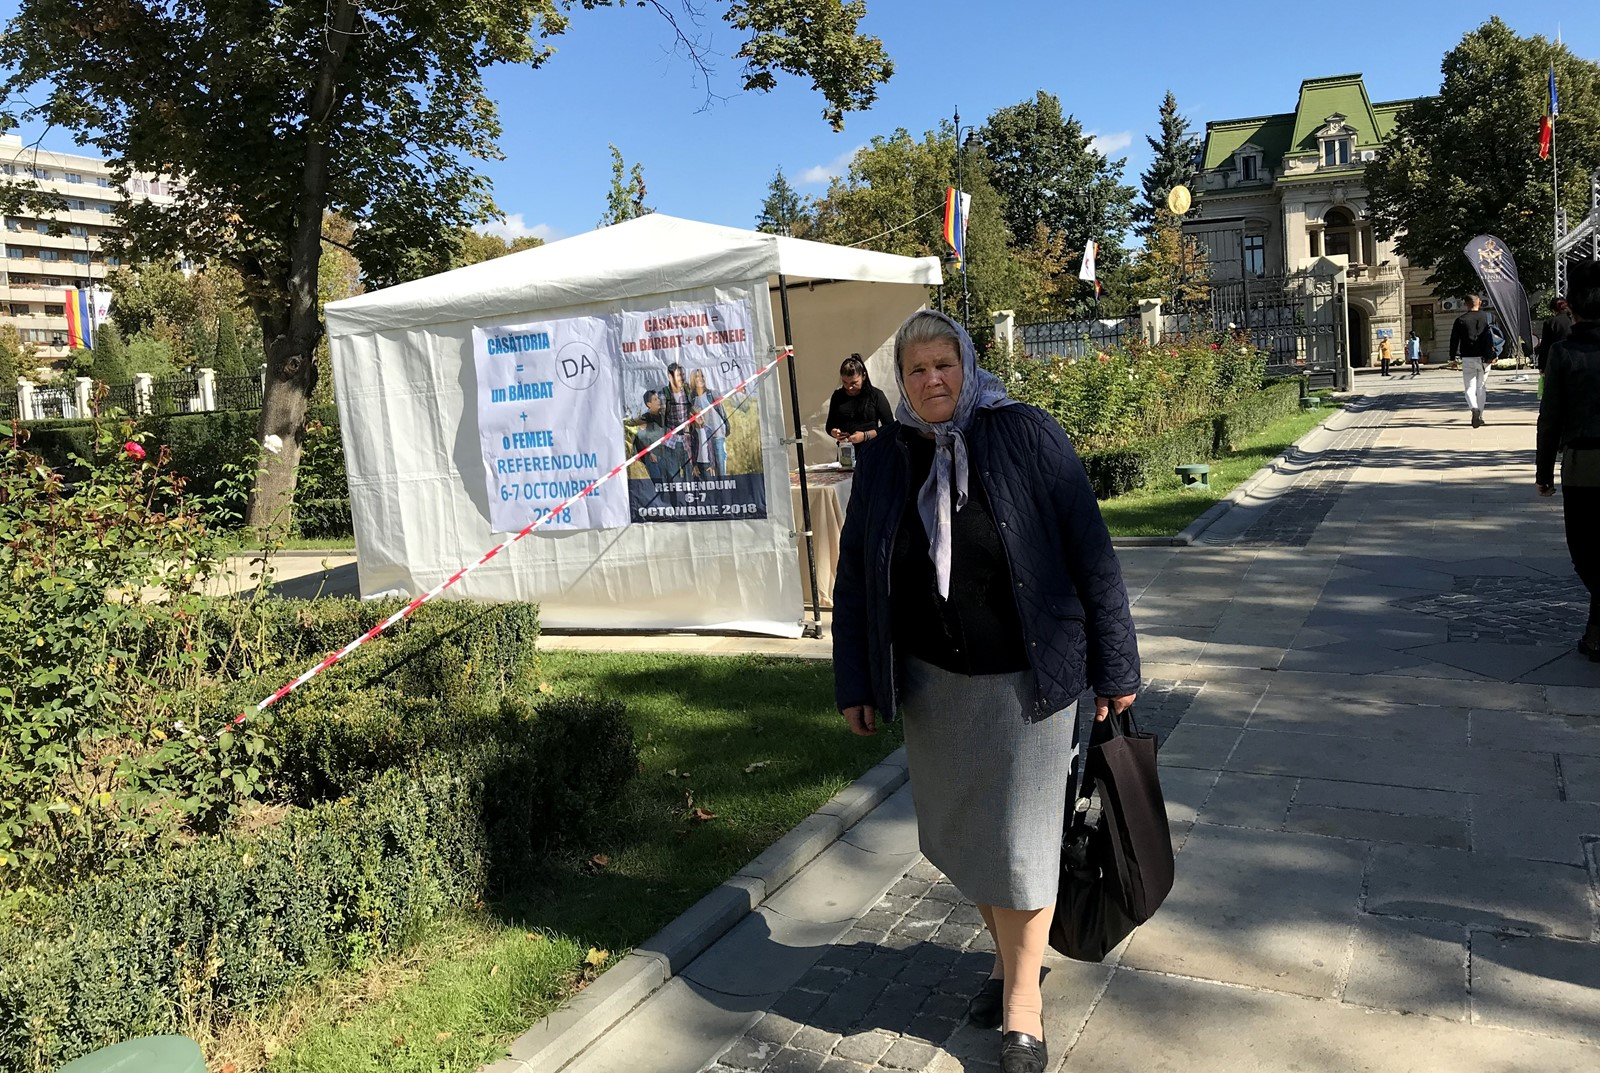 Romanians will vote this weekend on whether to change the constitution to ban same-sex marriage. Above, a woman in Iasi, Romania, walks past an information tent hosted by supporters of the referendum. — Photograph: Sabra Ayres/Los Angeles Times.